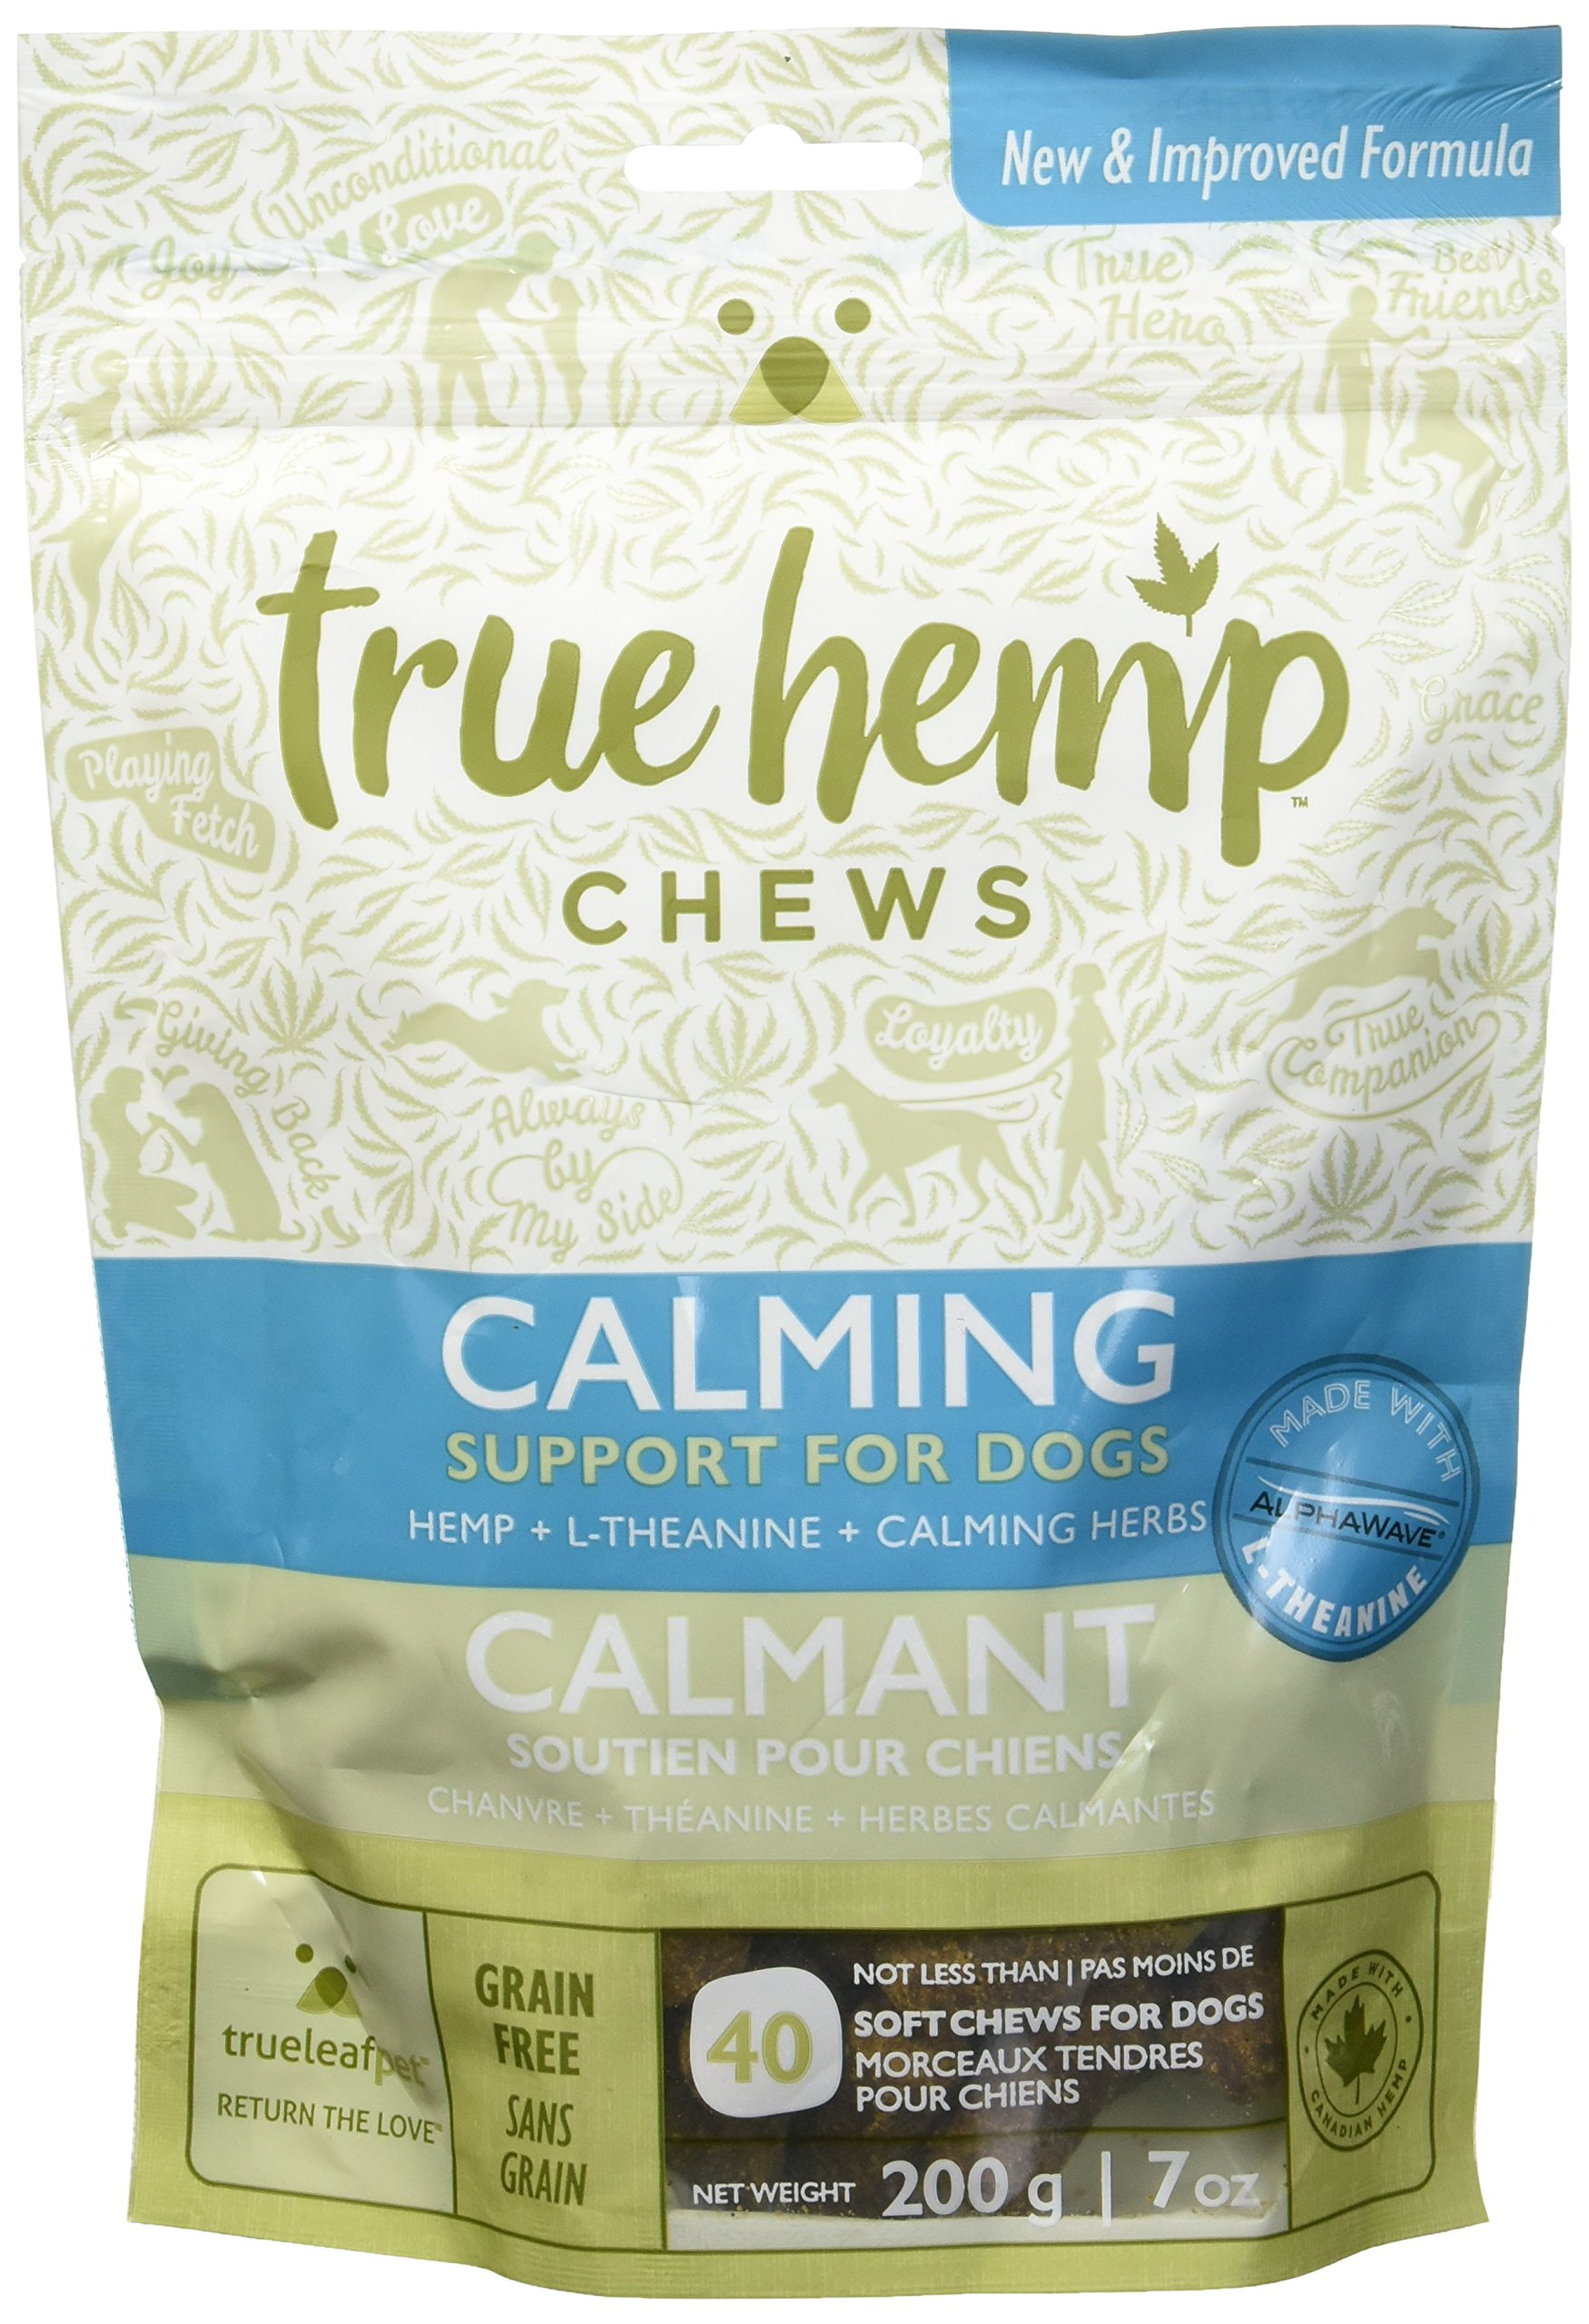 True Leaf Pet 40 Count Hemp Chews Calming Support for Dogs, 7 oz